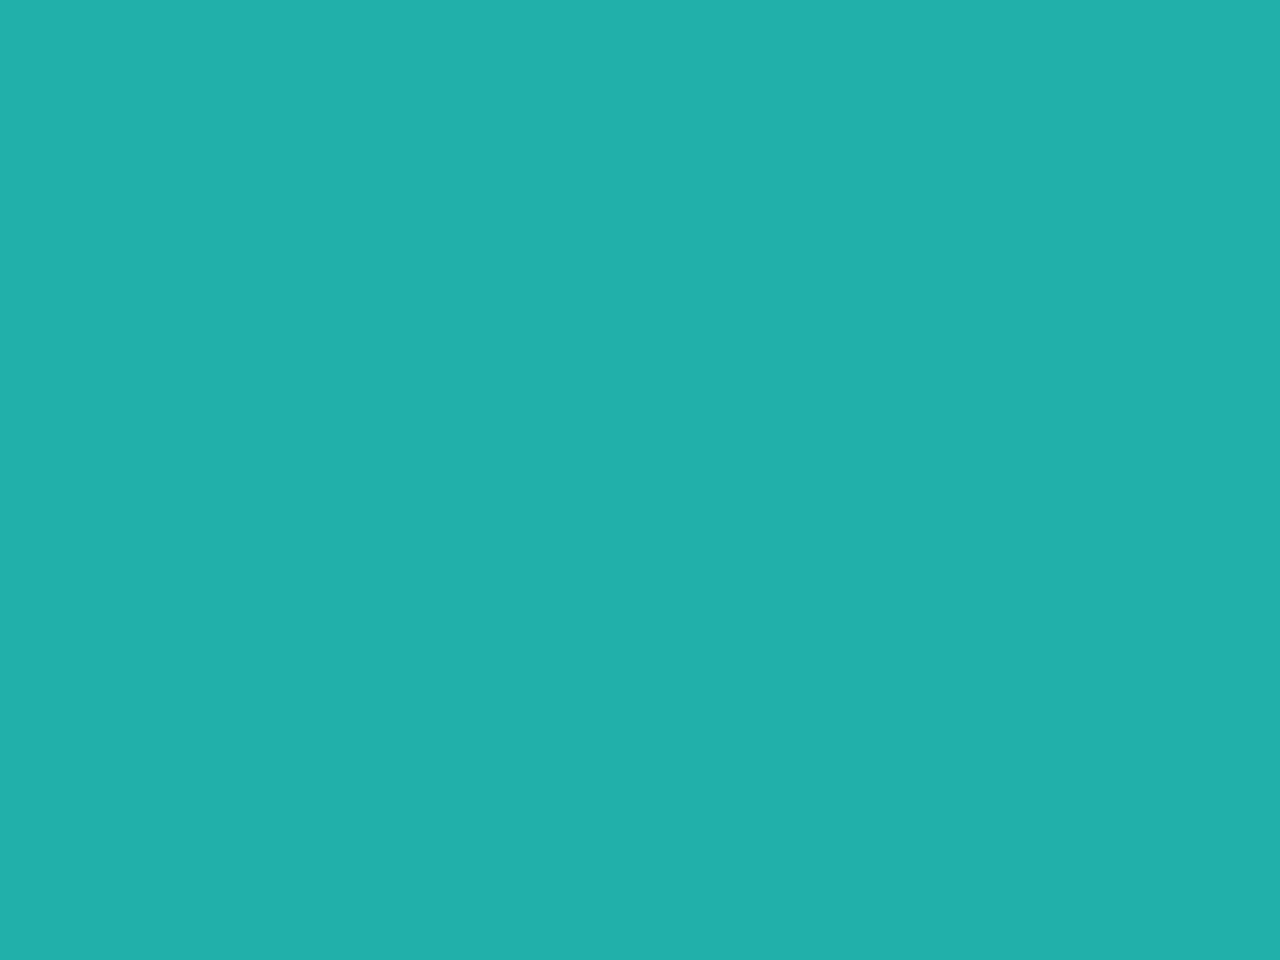 1280x960 Light Sea Green Solid Color Background